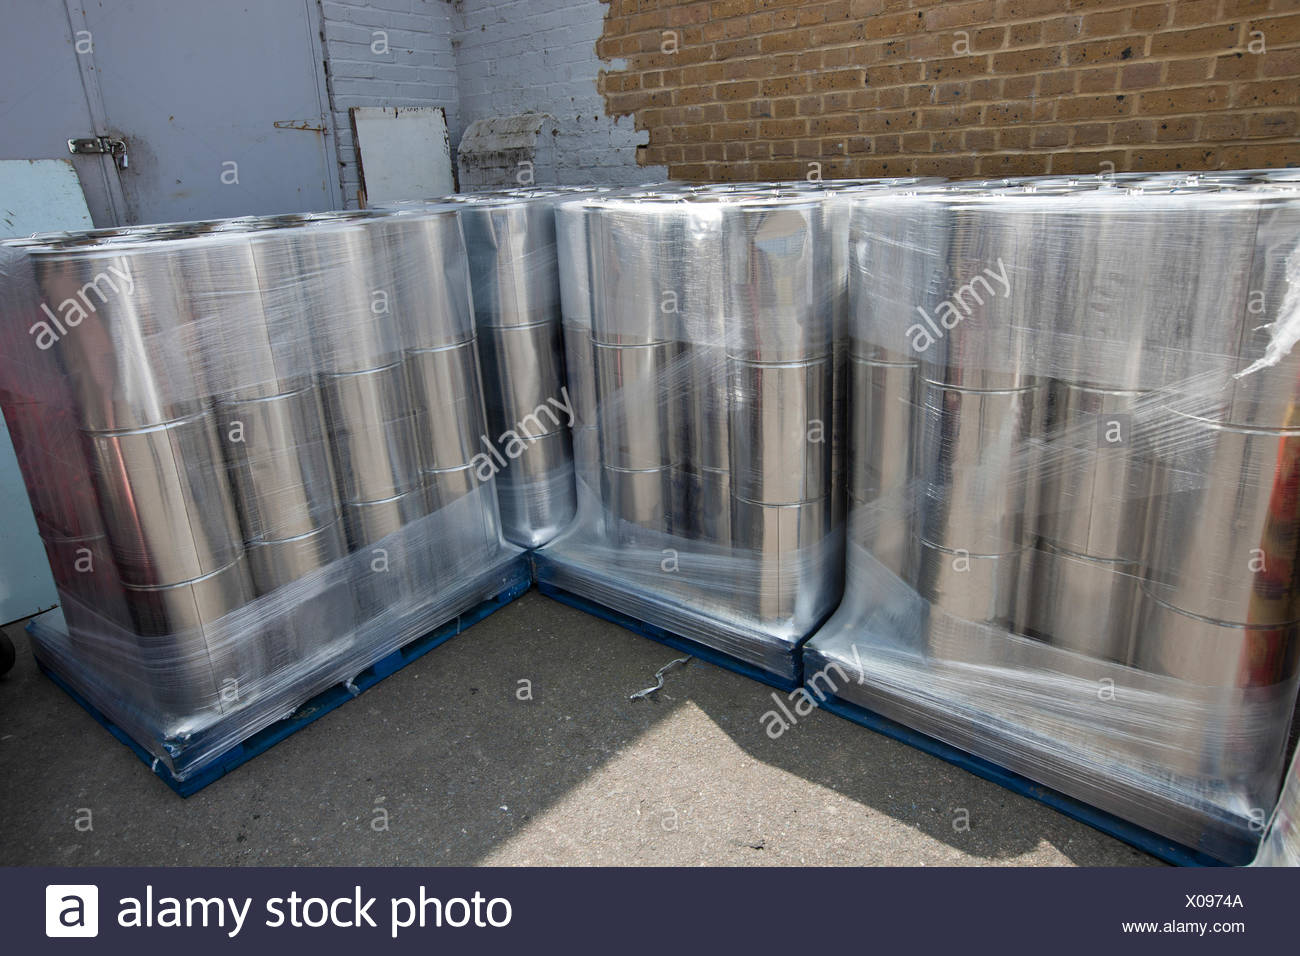 Stack of tins outside warehouse - Stock Image